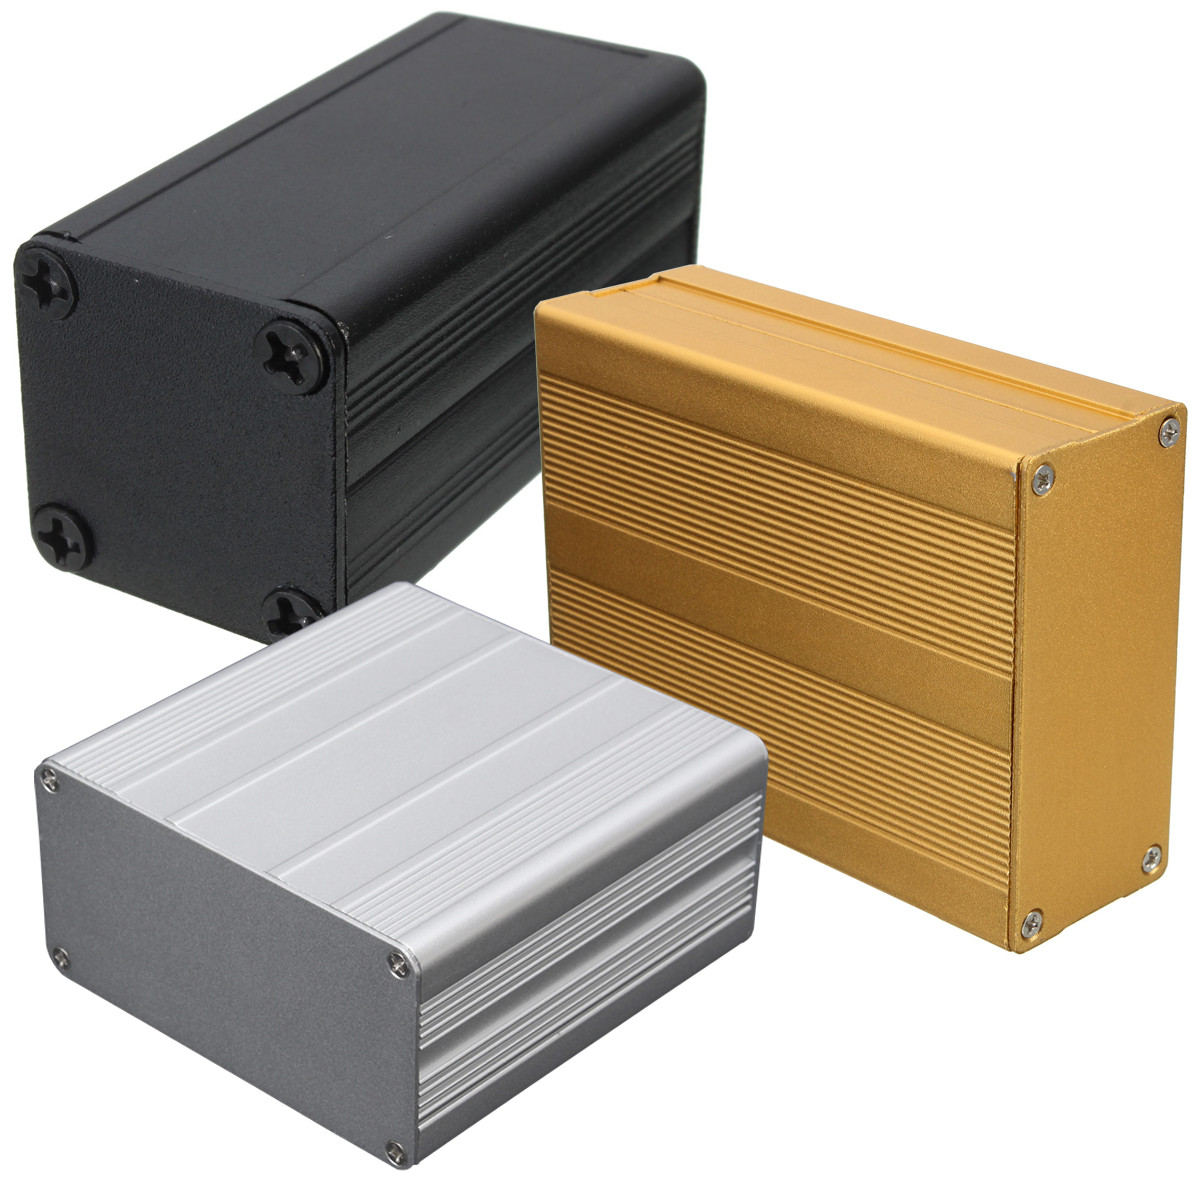 aluminum project box Circuit specialists carries a wide variety of molded plastic and heavy-duty metal electronic enclosures, boxes, and cases for your next project including affordable compact plastic project boxes, die-cast aluminum enclosures for rfi protection, and plastic project enclosures with pcb mounting holes and slots our extruded.